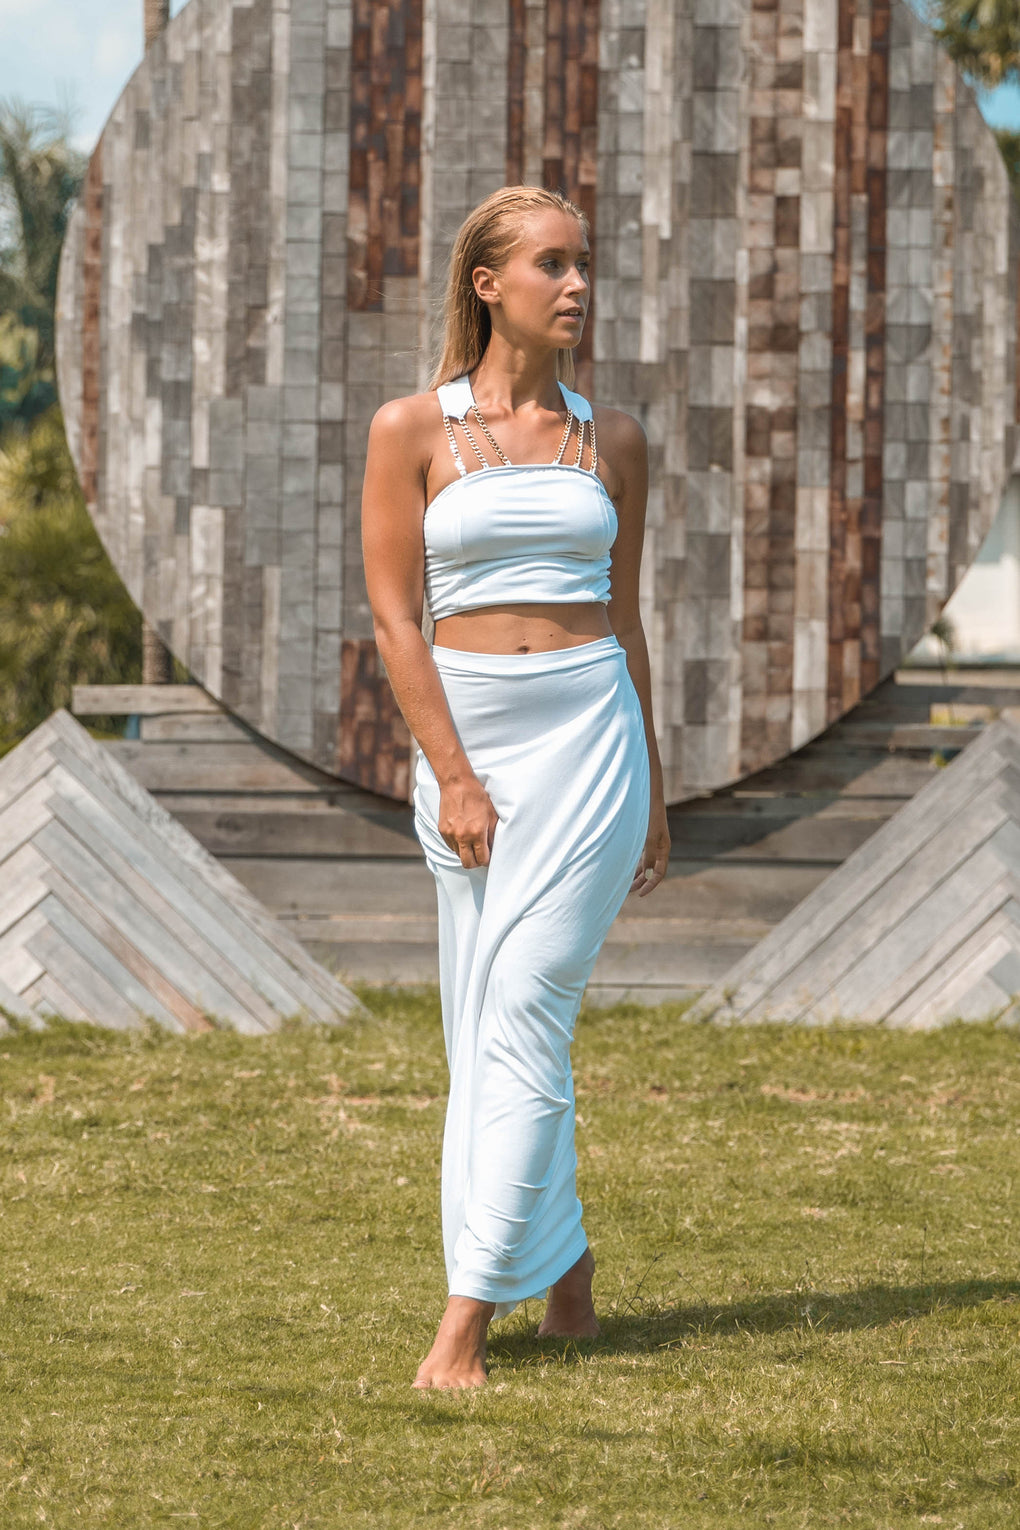 Two-Piece Chain Gown with Modal Cotton - Hanalei Swan Styles